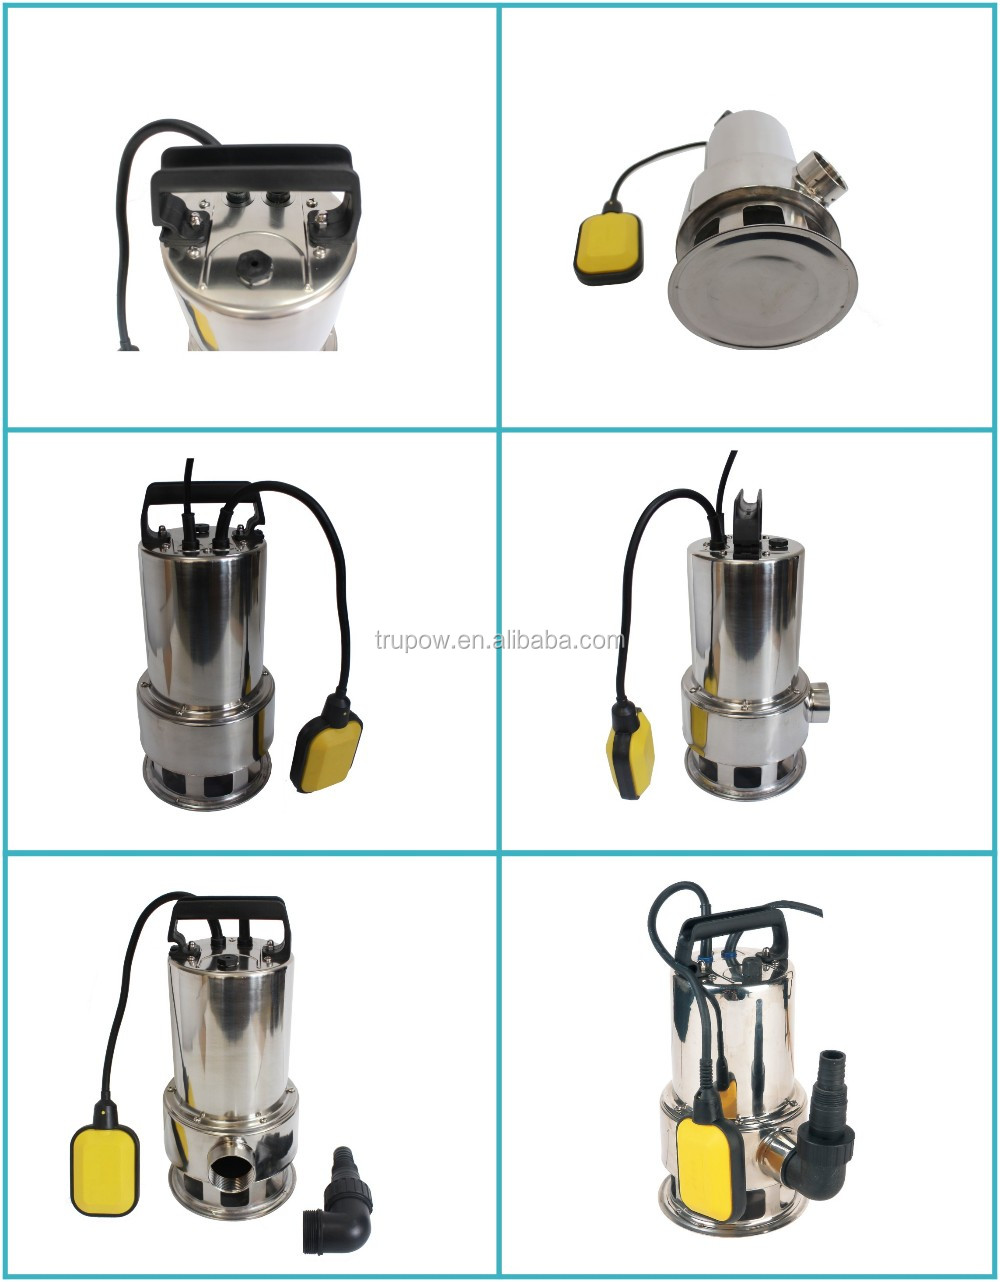 Trupow Low Cost 1100W Stainless Steel Submersible Dirty Water Pump